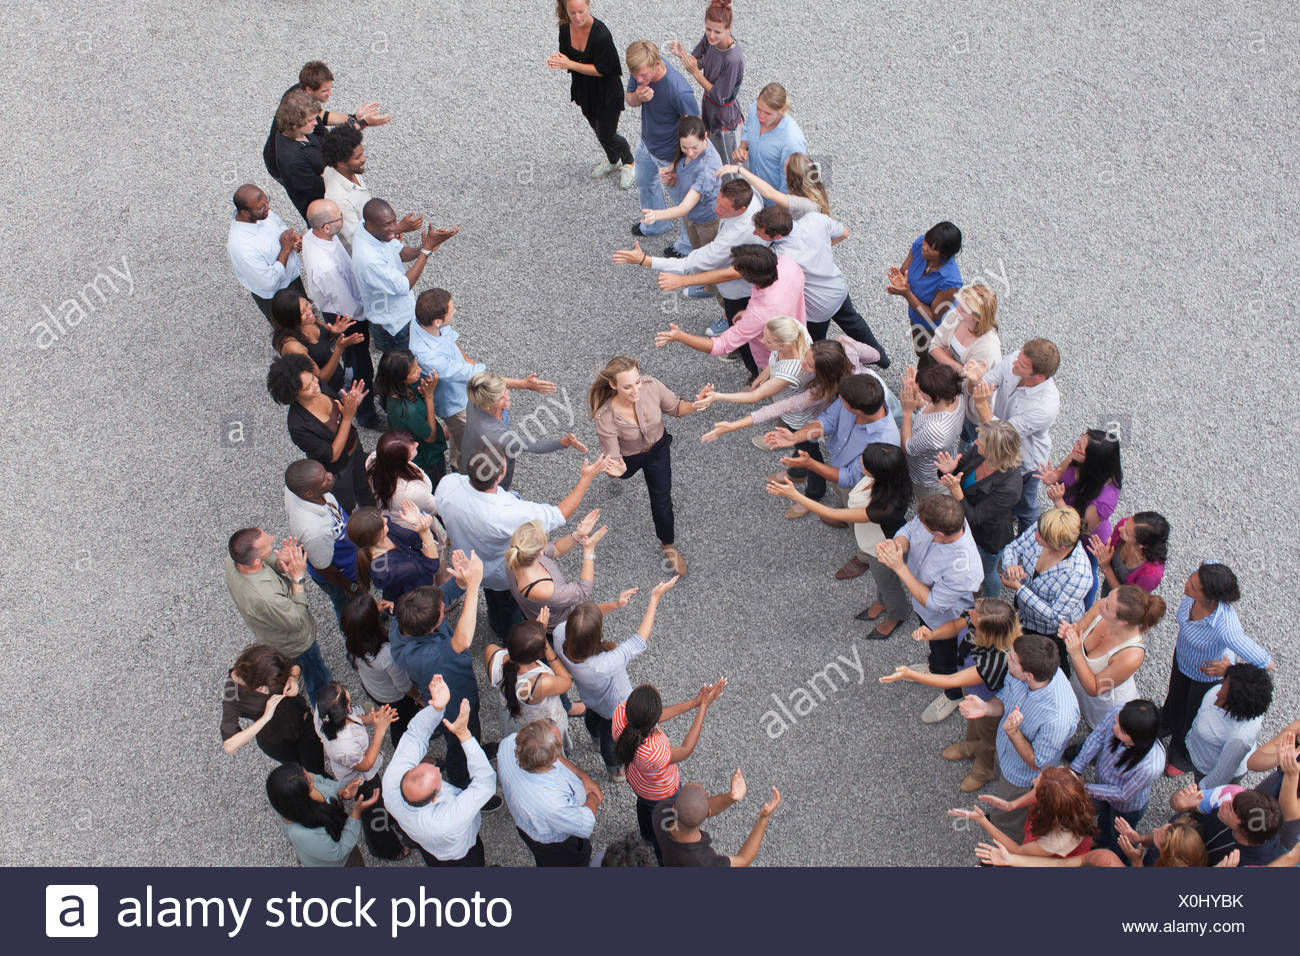 Woman walking past crowd, high-fiving people - Stock Image